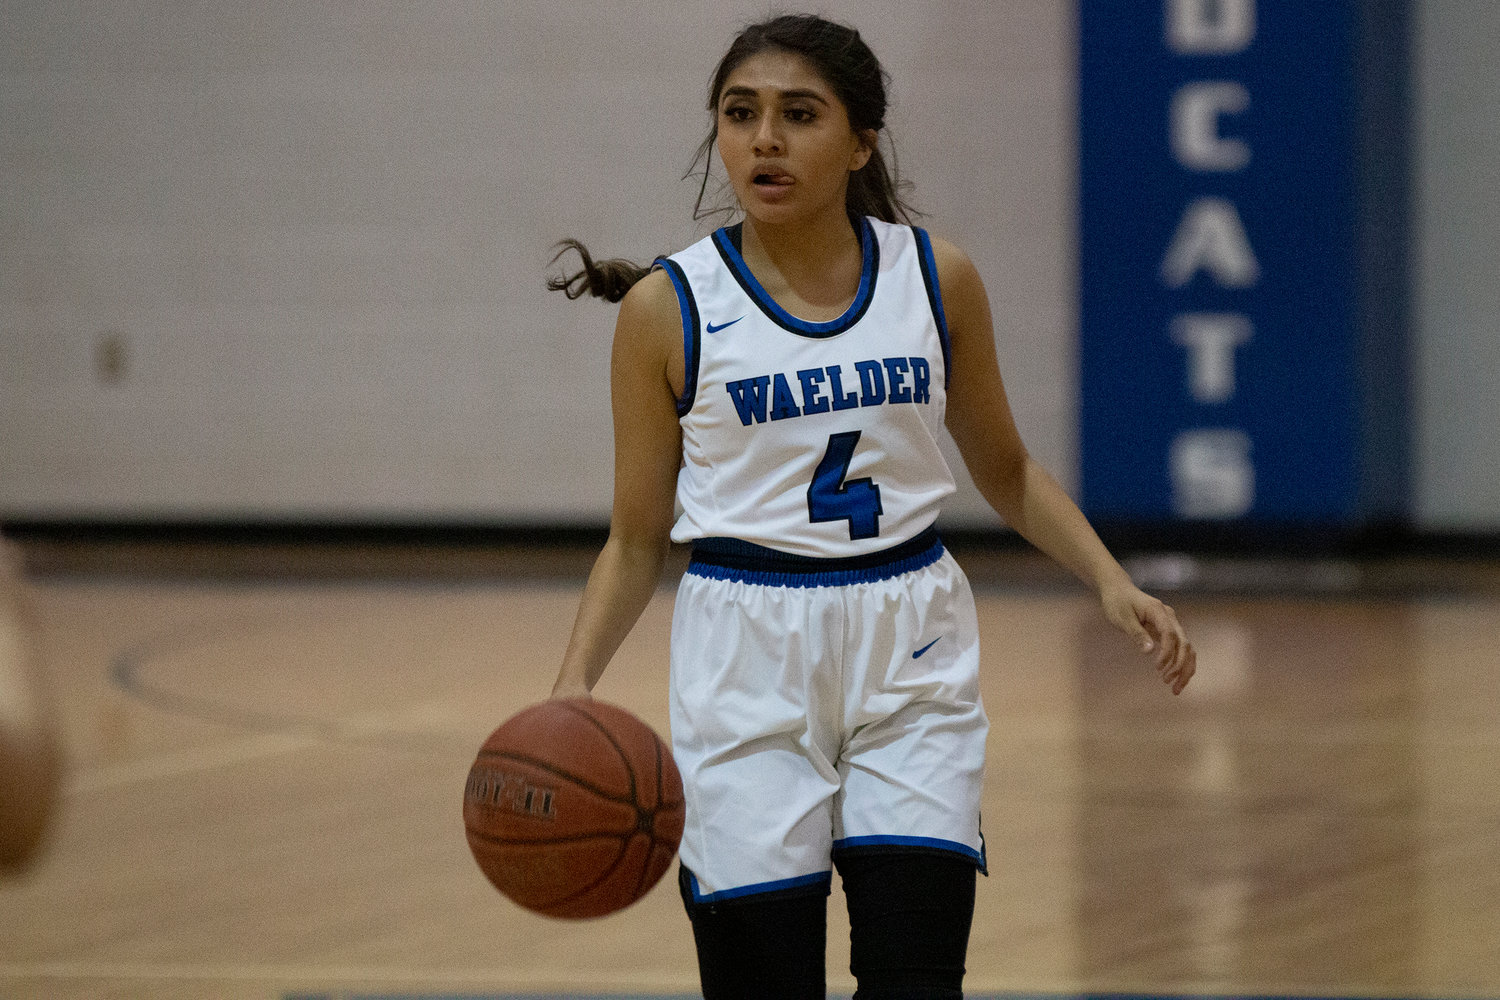 Maely Bracamontes (4) looks for an opening in Waelder's loss against Dime Box last Friday.